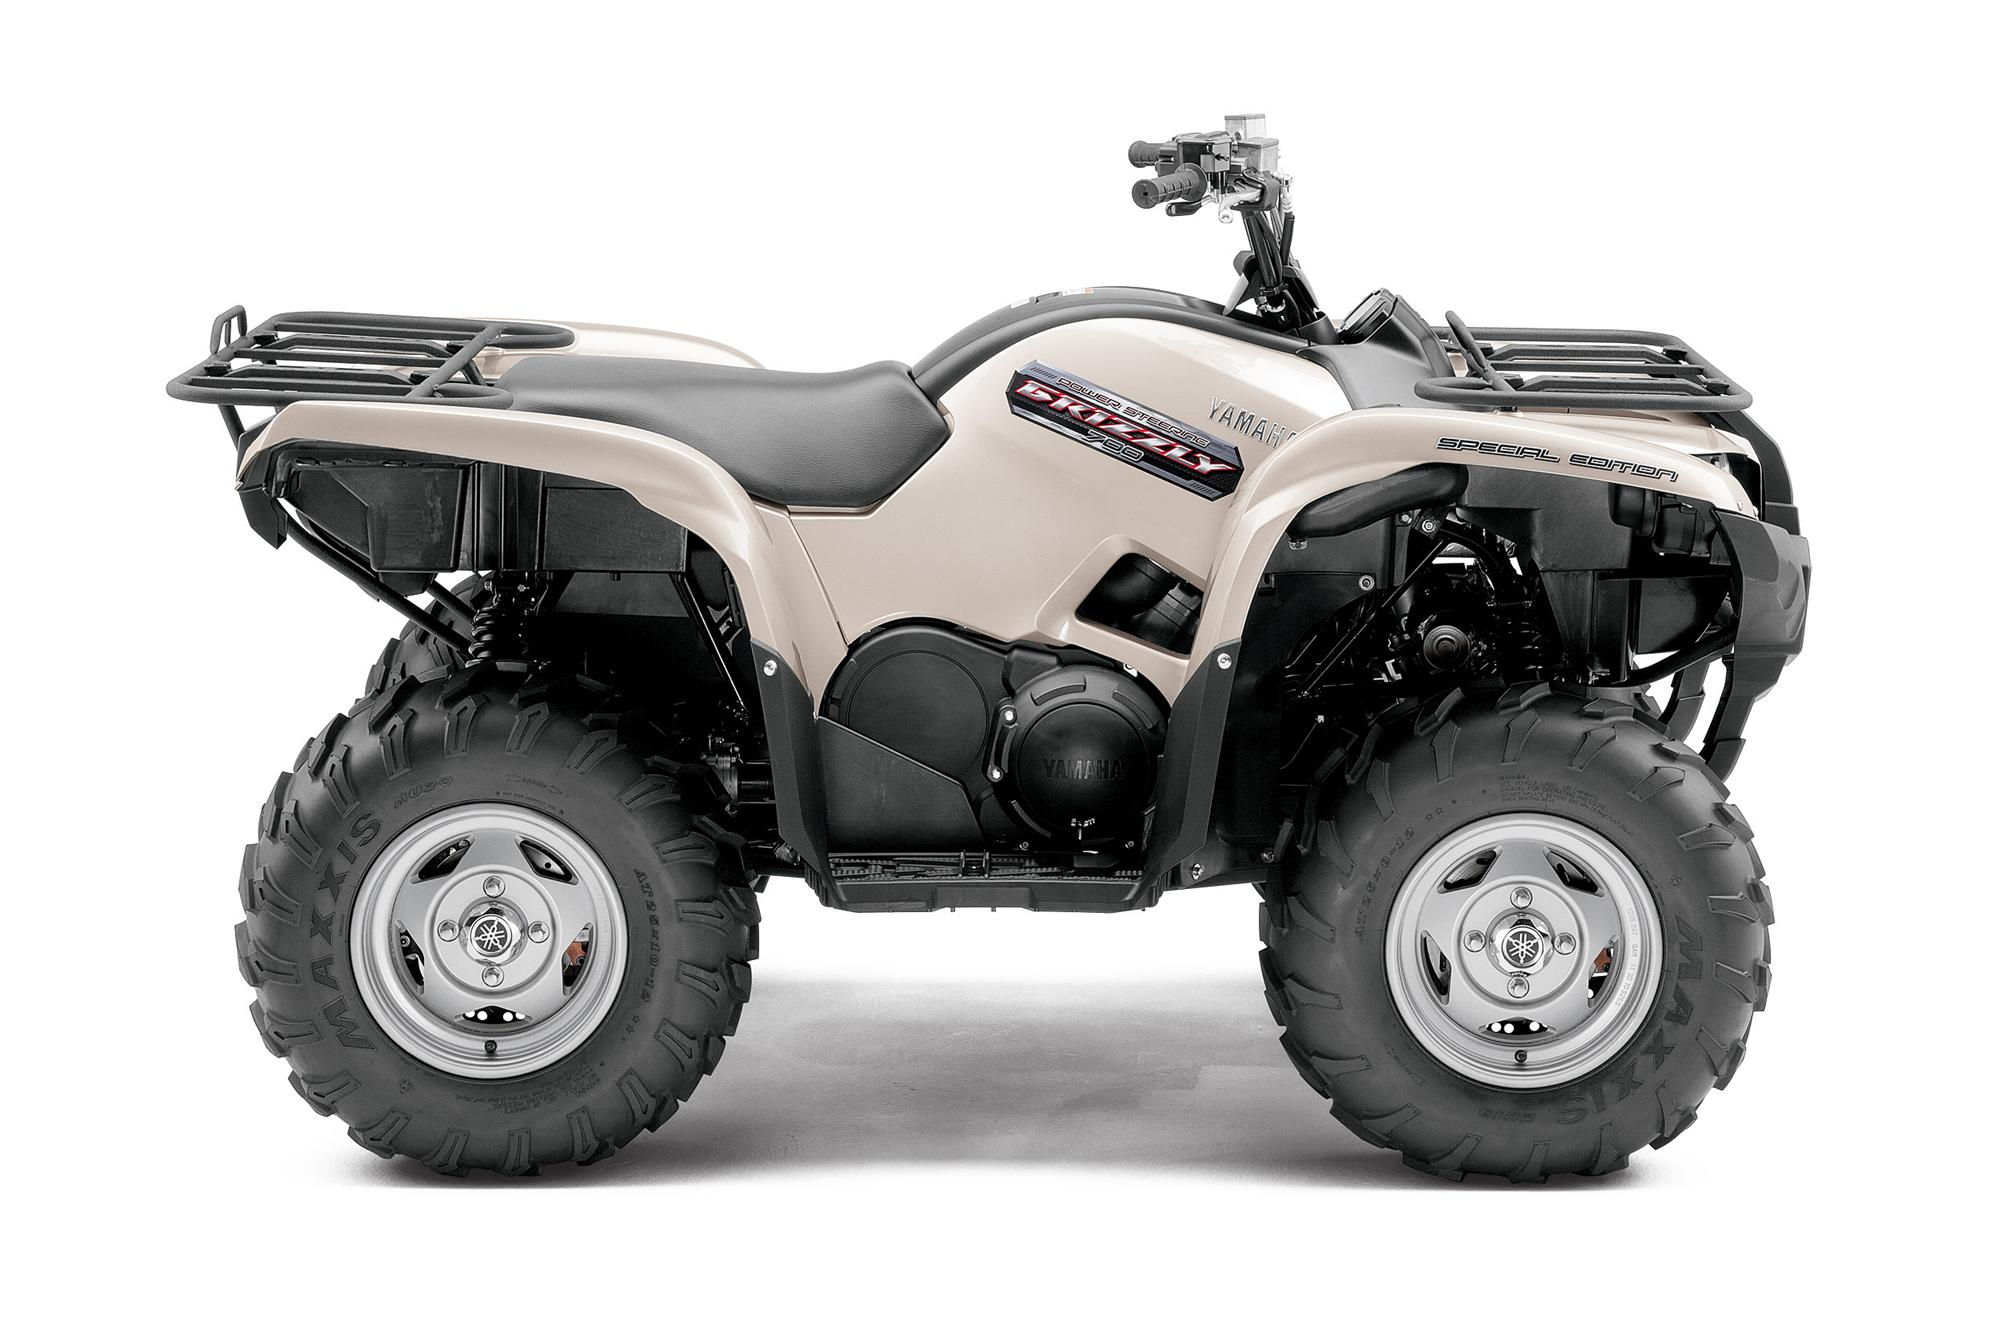 YAMAHA Grizzly 700 FI Automatic 4x4 EPS Special Edition Photo Gallery